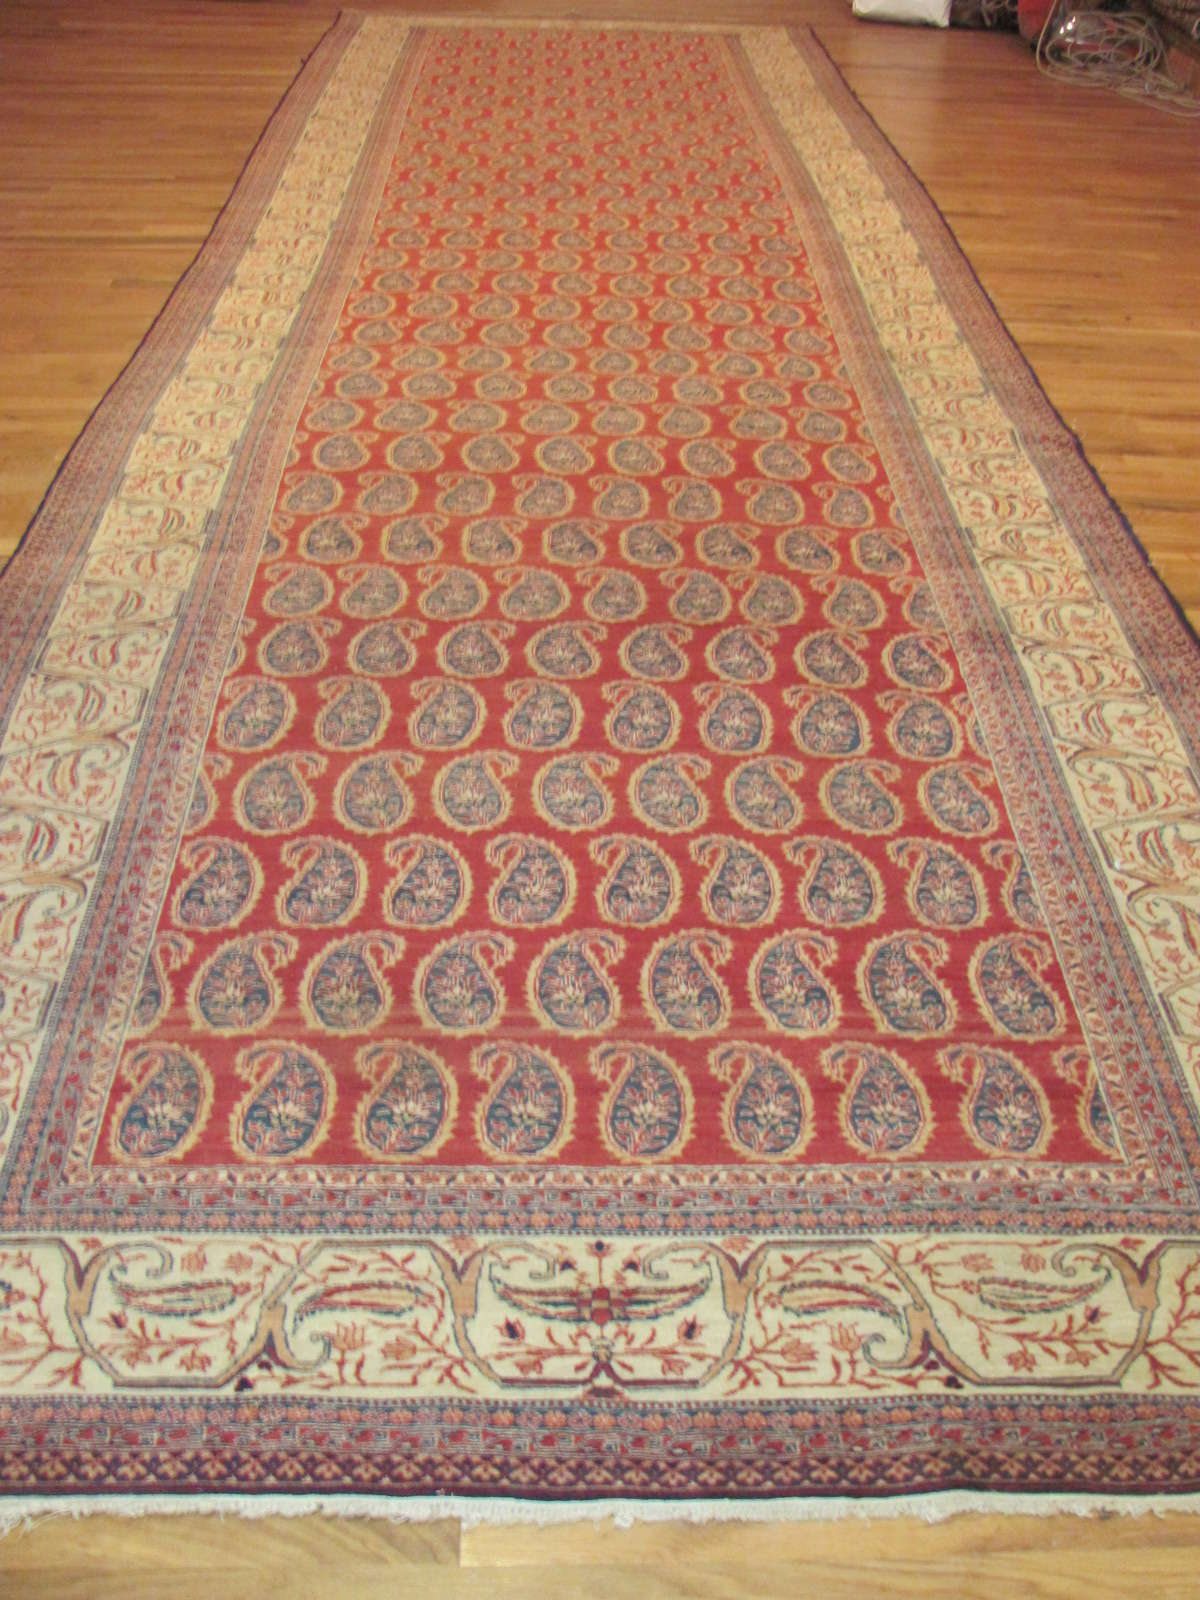 Tabriz Carpet | Persia | Handmade | Antique, Circa 1900